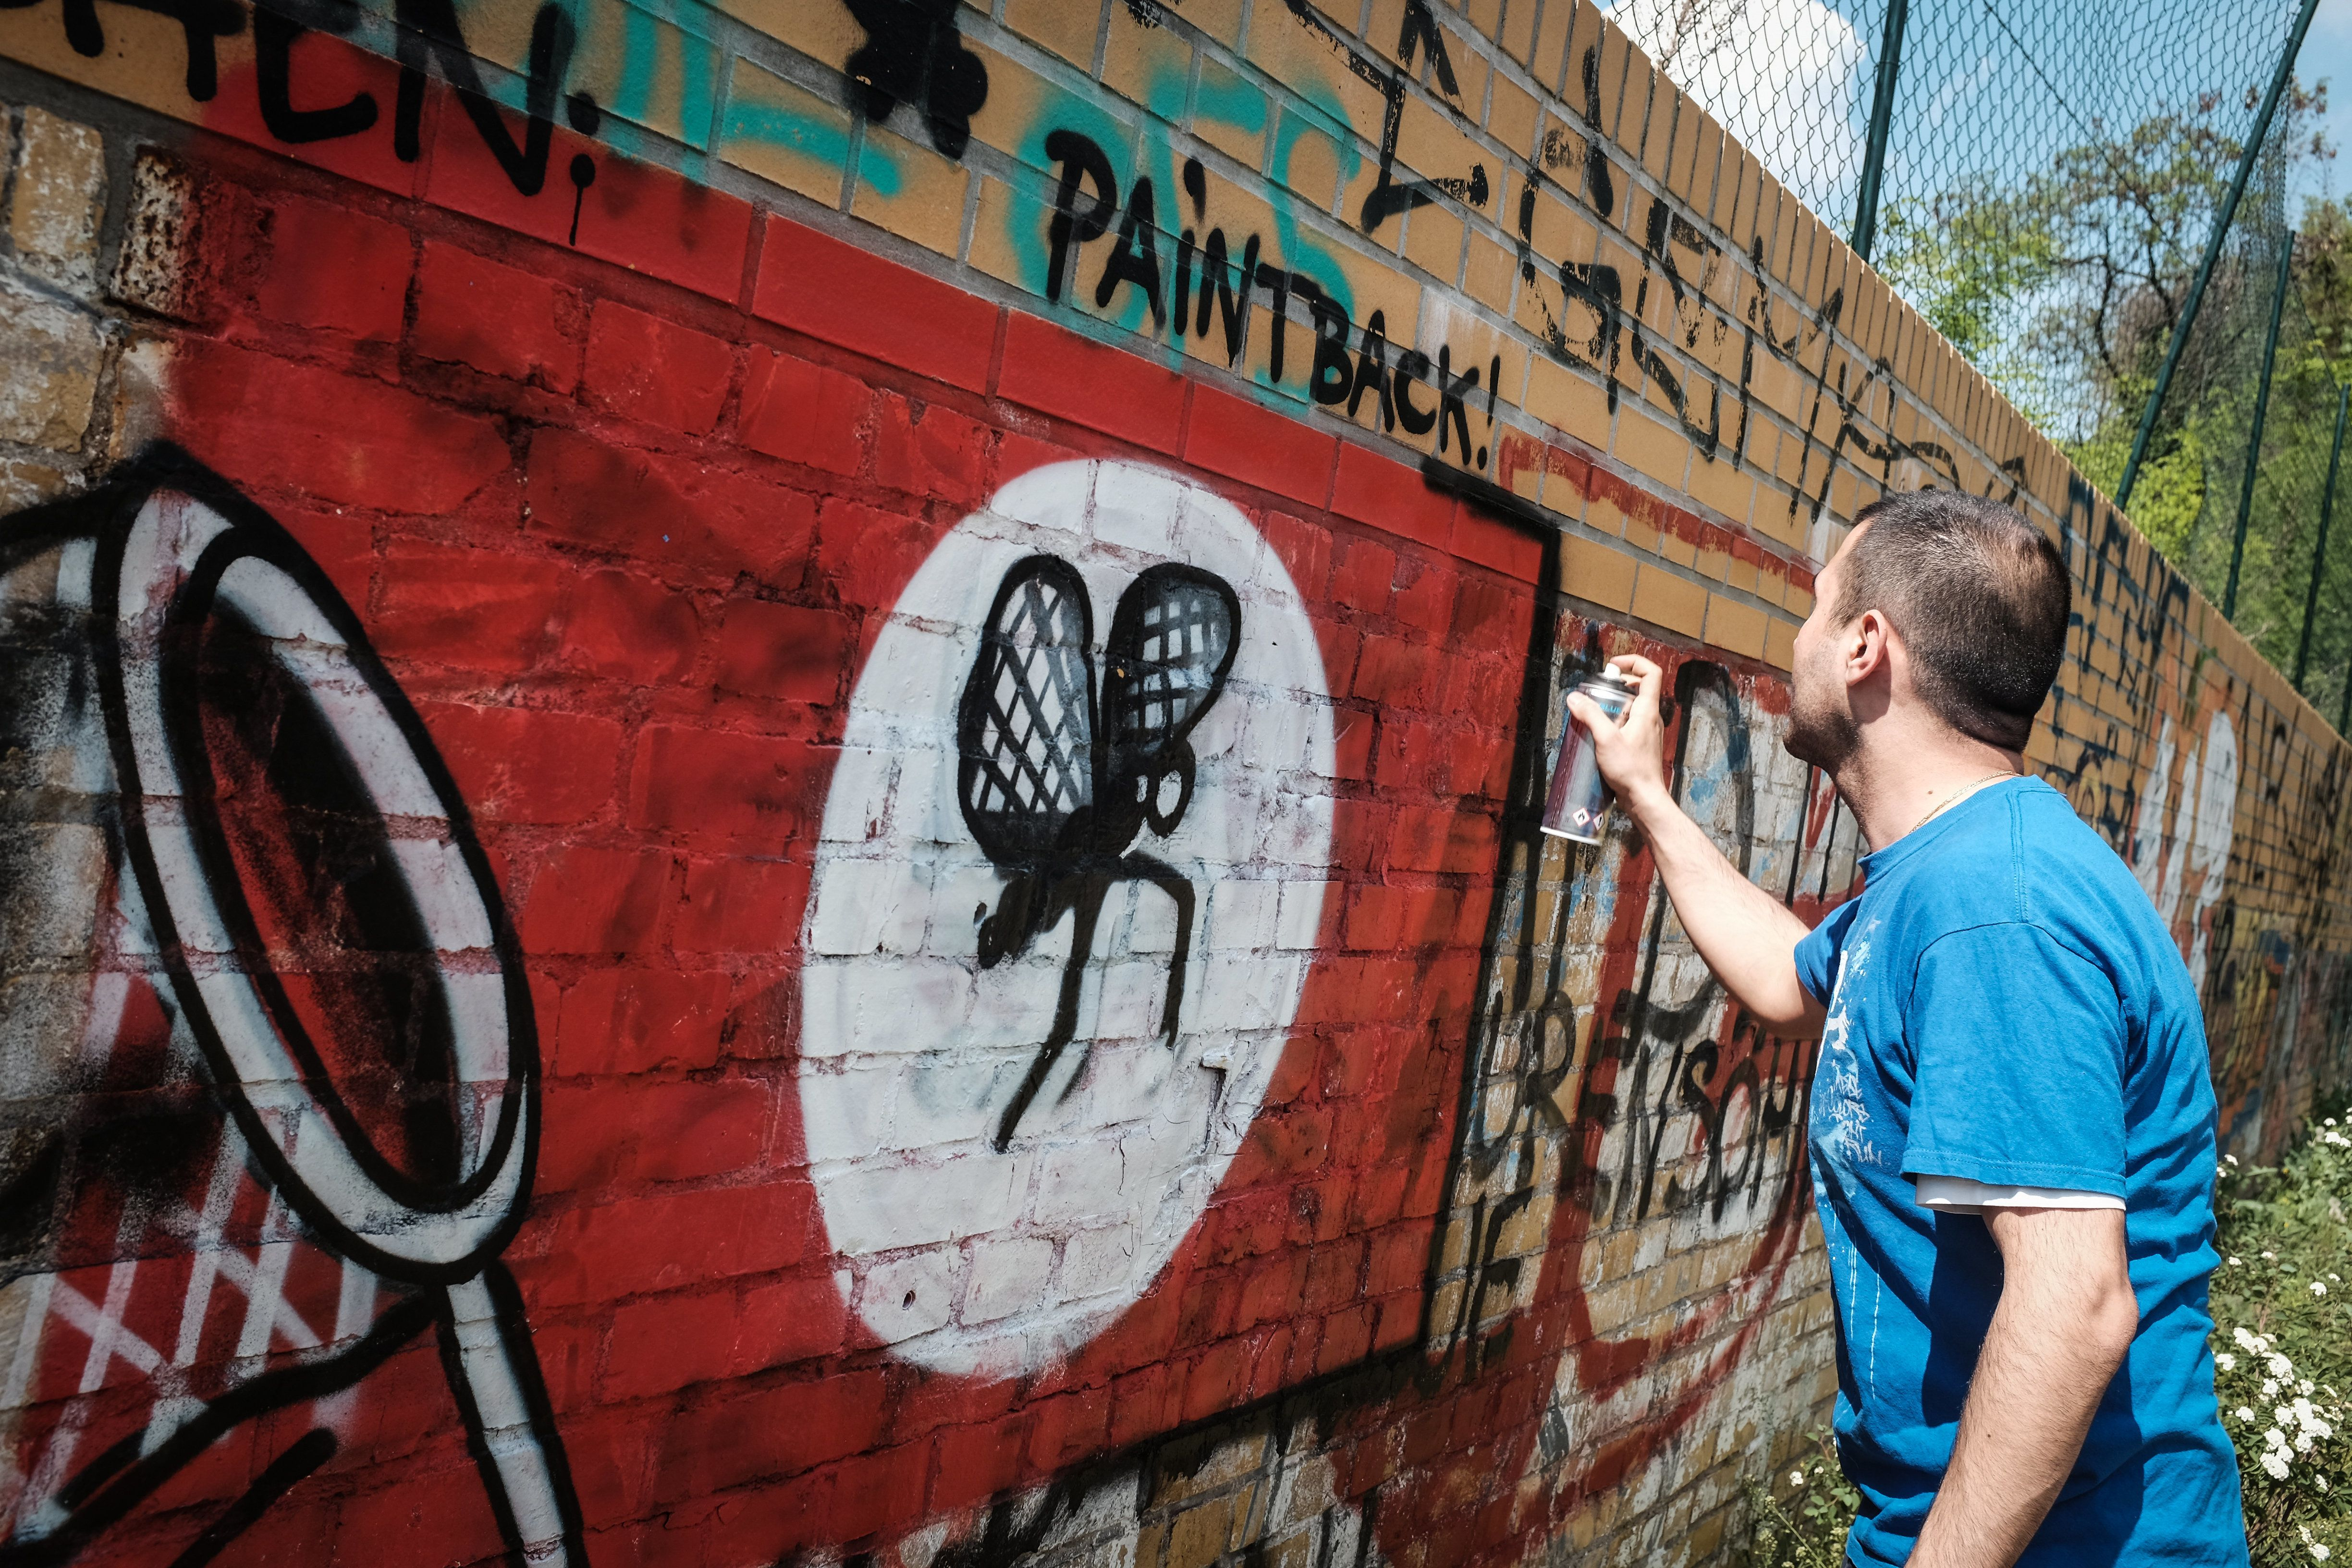 Picture taken on May 11, 2016 shows street artist Ibo Omari overpainting a swastika in Berlin. A ragtag band of Berlin street artists is taking aim at an urban scourge of neo-Nazi graffiti, using 'love and humour' to turn swastikas into colourful symbols of inclusiveness. / AFP PHOTO / dpa / Sophia Kembowski / RESTRICTED TO EDITORIAL USE - MANDATORY MENTION OF THE ARTIST UPON PUBLICATION - TO ILLUSTRATE THE EVENT AS SPECIFIED IN THE CAPTION///TO GO WITH AFP STORY BY OCEANE LAZE AND DEBORAH COLE        (Photo credit should read SOPHIA KEMBOWSKI/AFP/Getty Images)